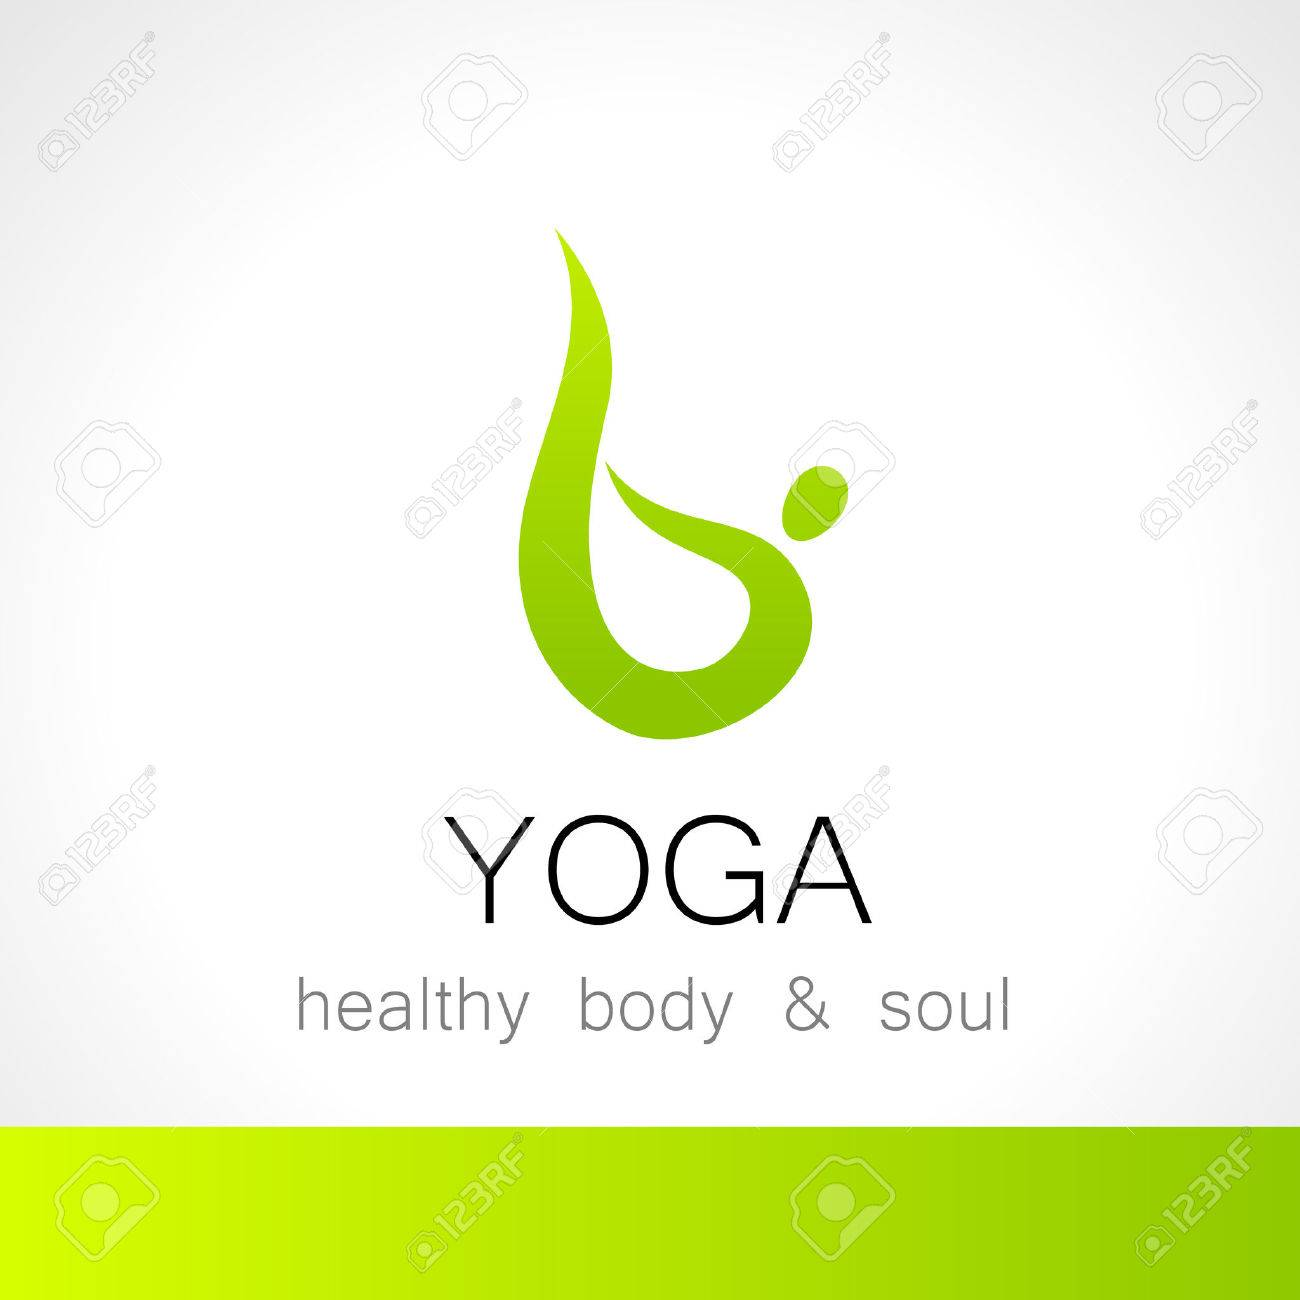 Yoga Logo Design Template Health Care Beauty Spa Relax Royalty Free Cliparts Vectors And Stock Illustration Image 43027277